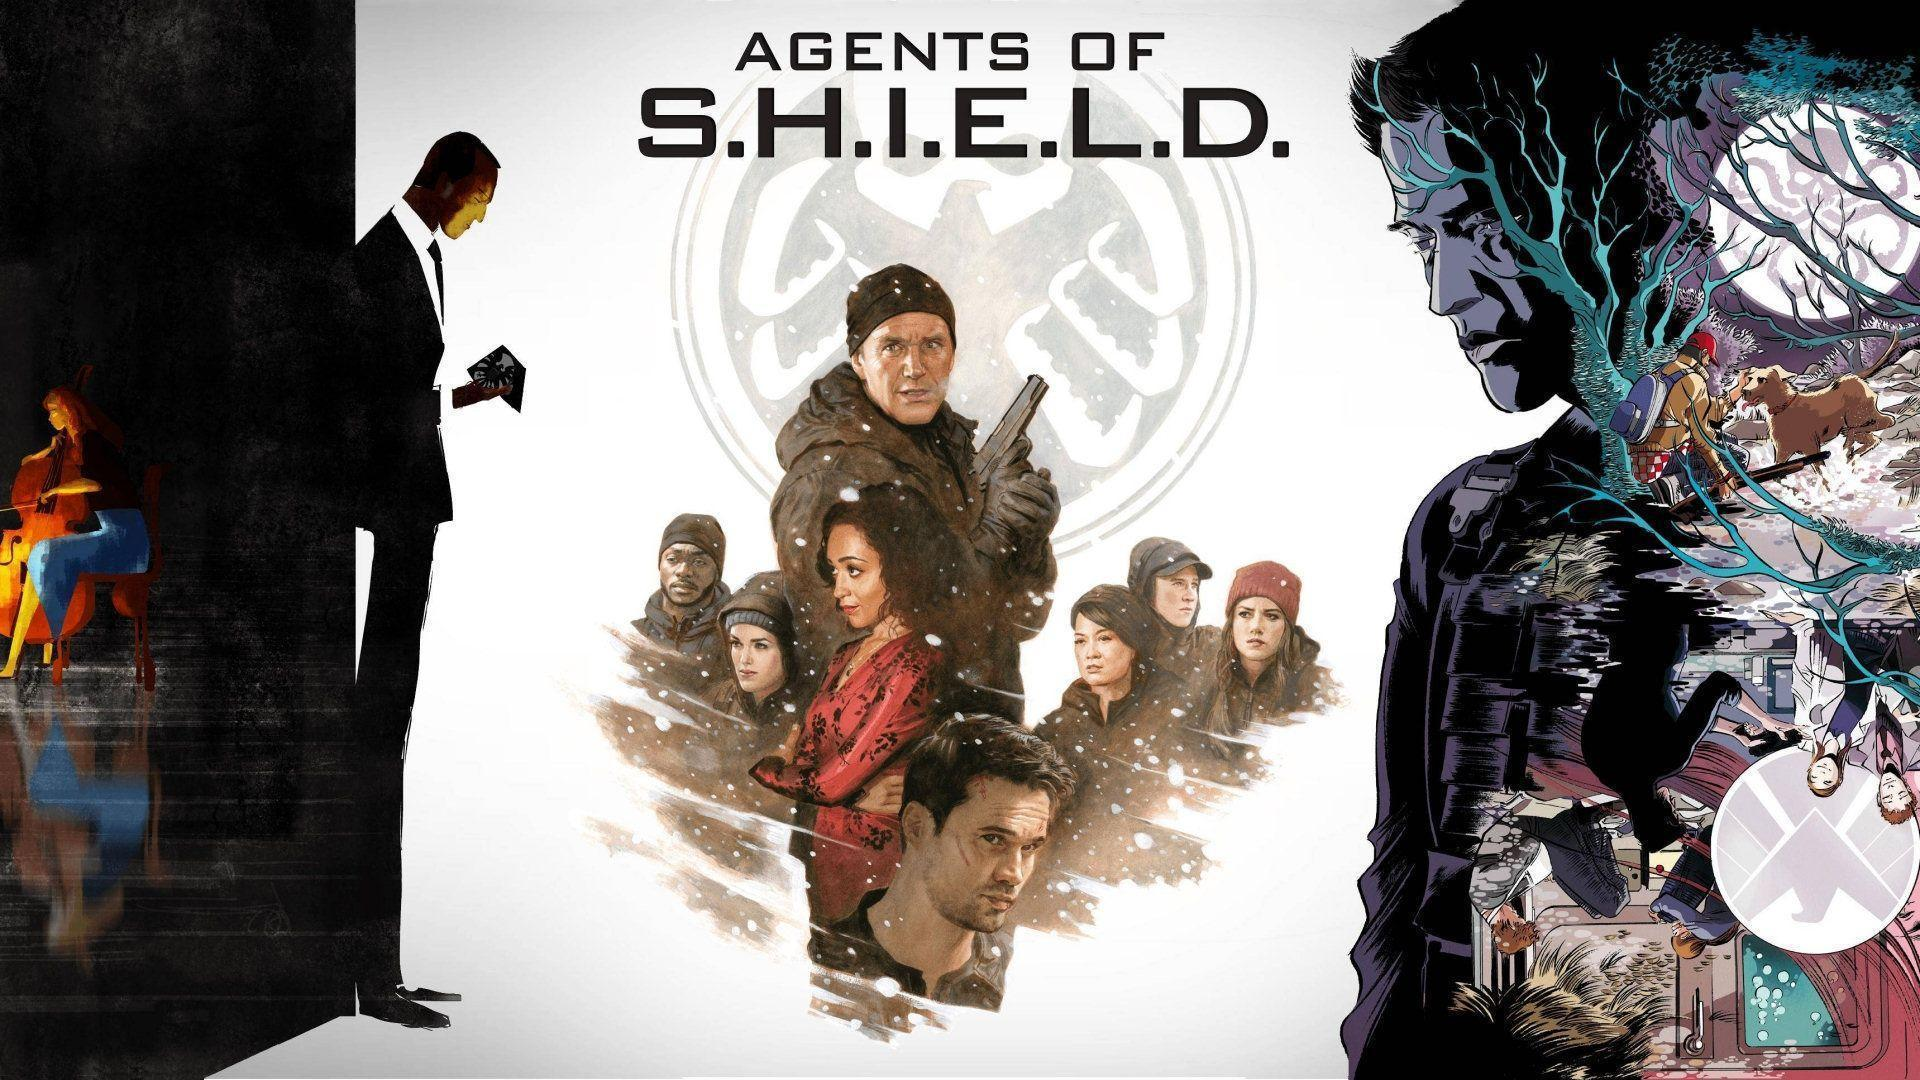 Agents Of S.H.I.E.L.D Background 10